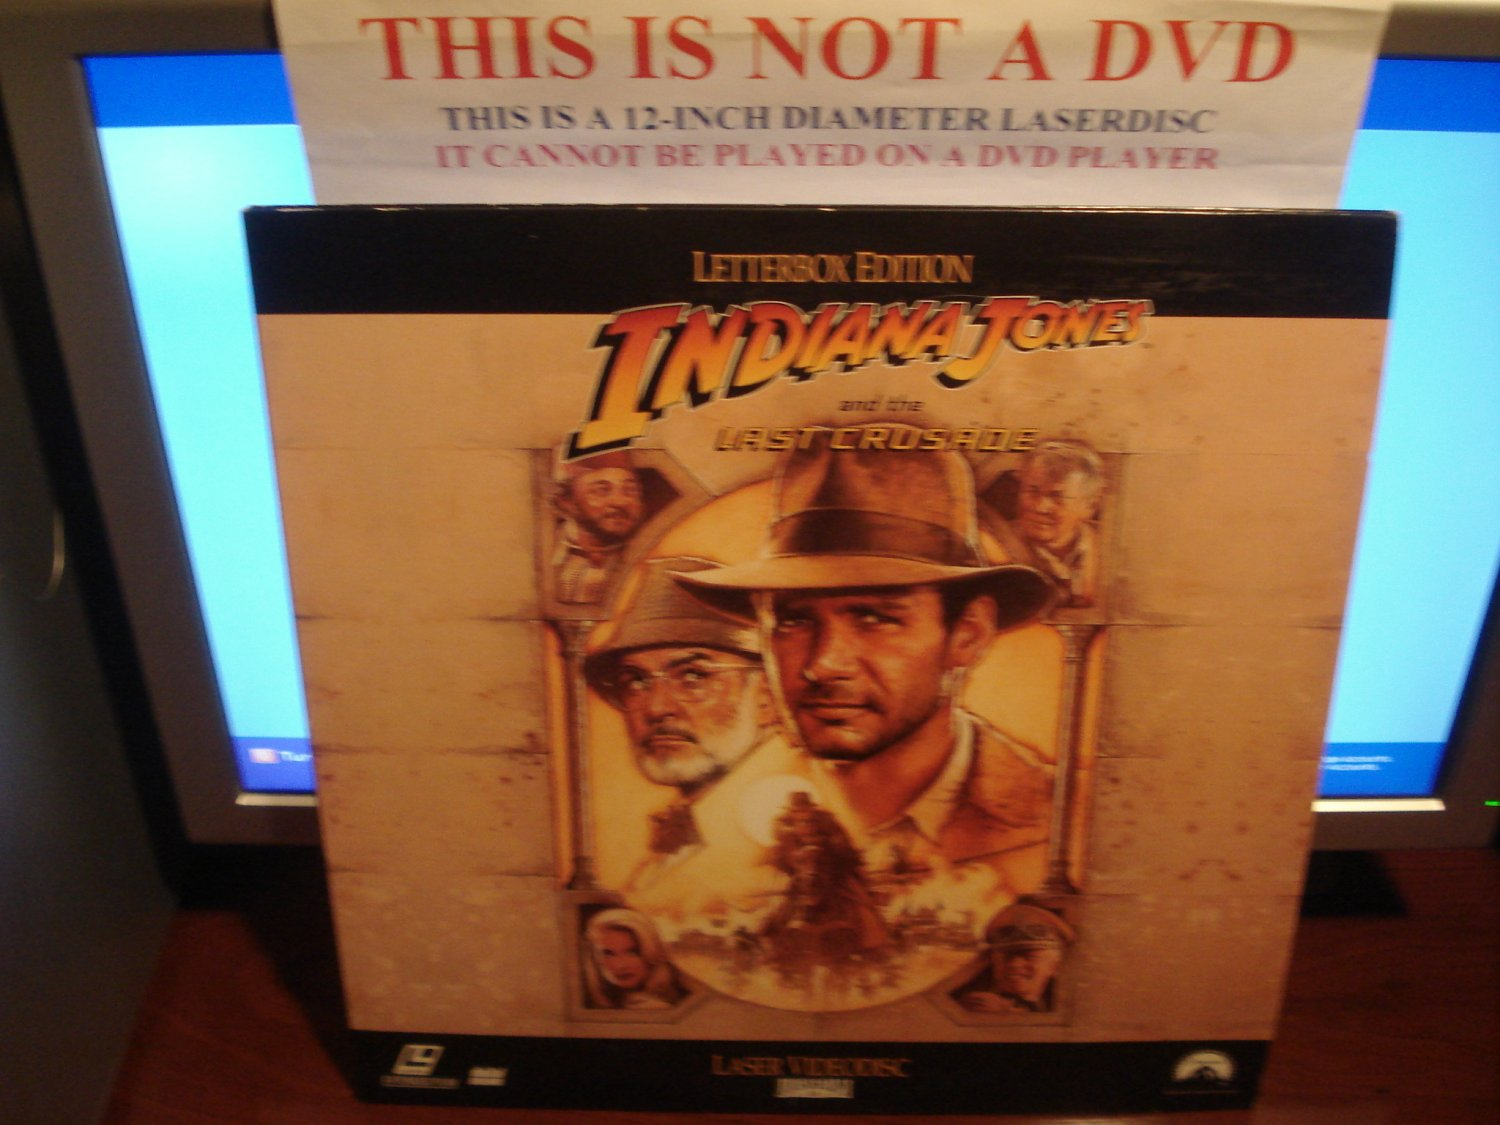 Laserdisc INDIANA JONES AND THE LAST CRUSADE 1989 Harrison Ford Lot#13 LTBX LD Movie [LV31859-2L]